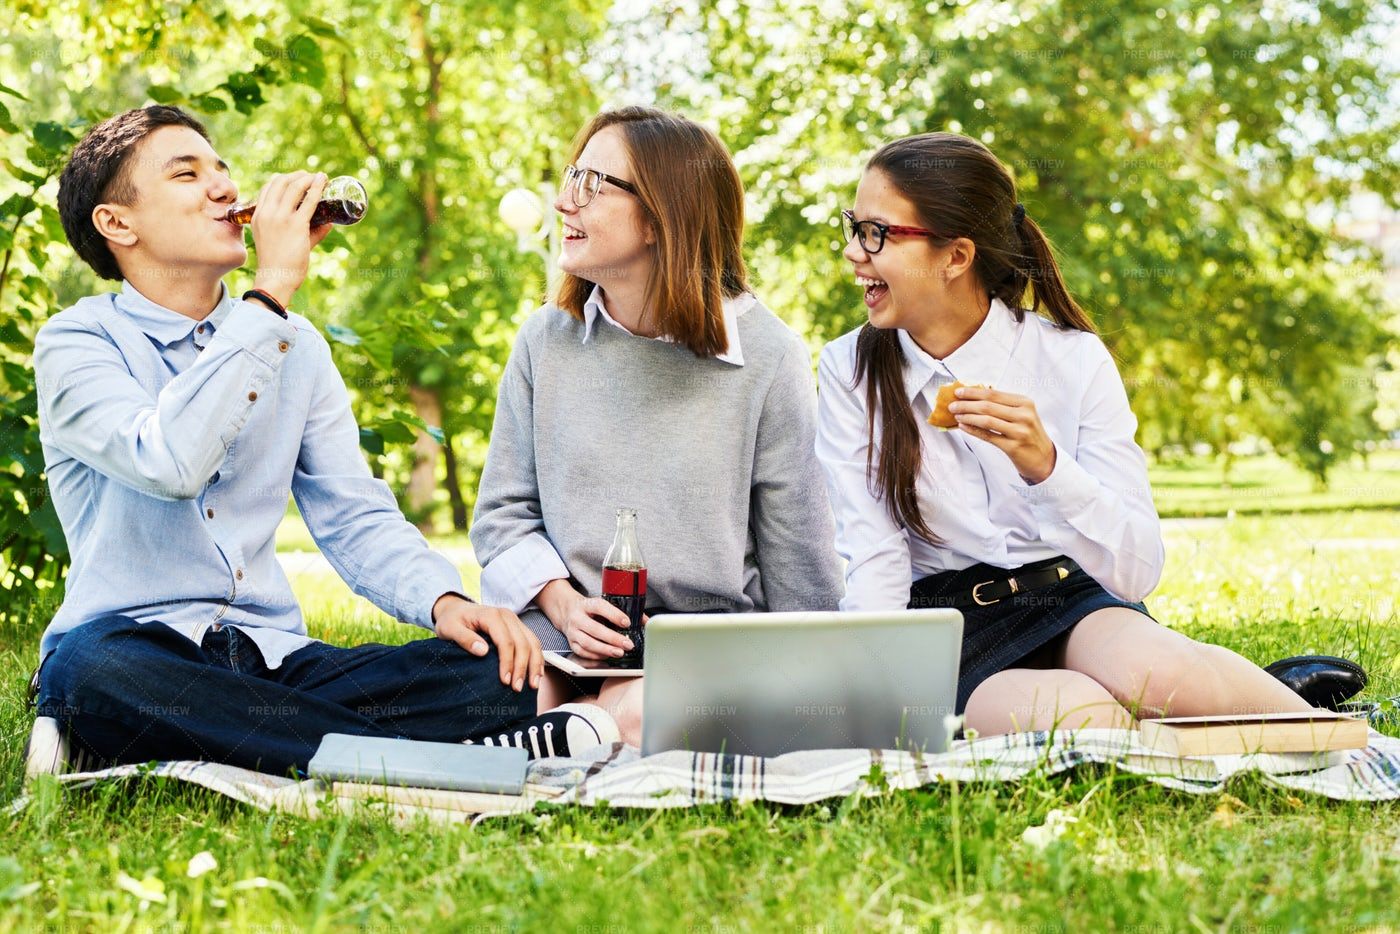 Teenage Kids Relaxing On Green Lawn: Stock Photos